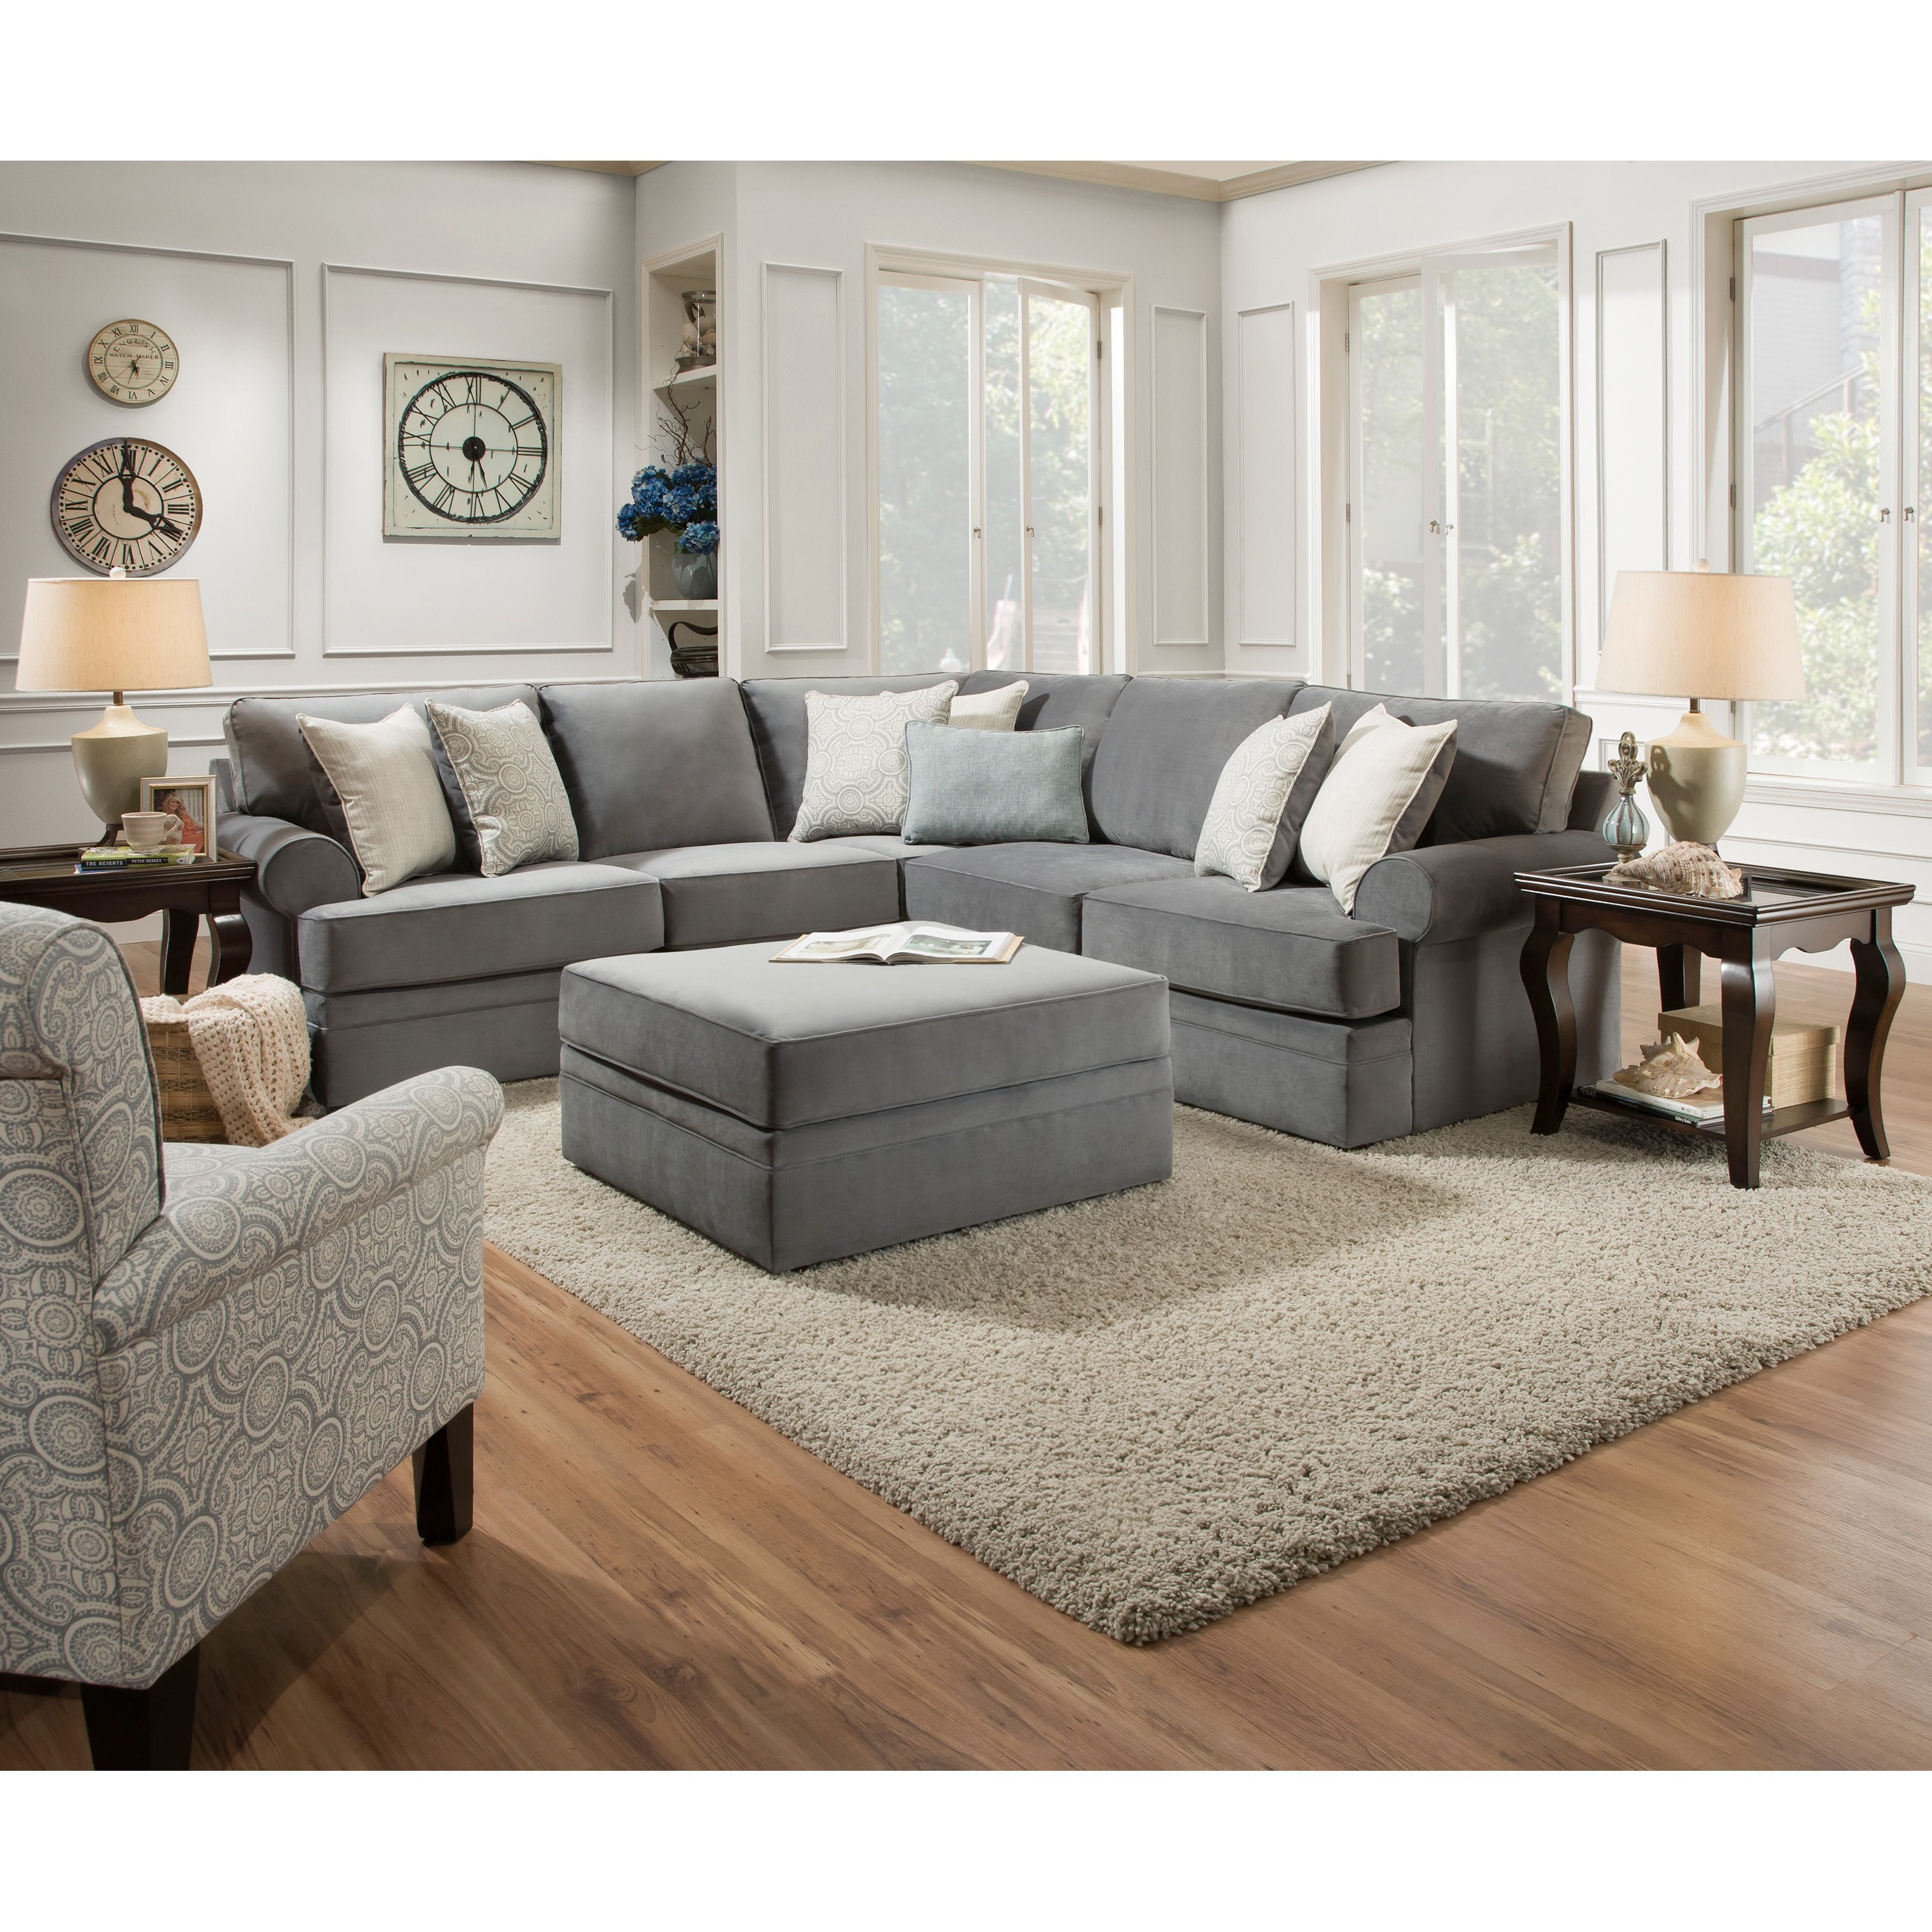 Comfortable Living Roomfurniture Furniture Excellent Simmons Upholstery sofa for